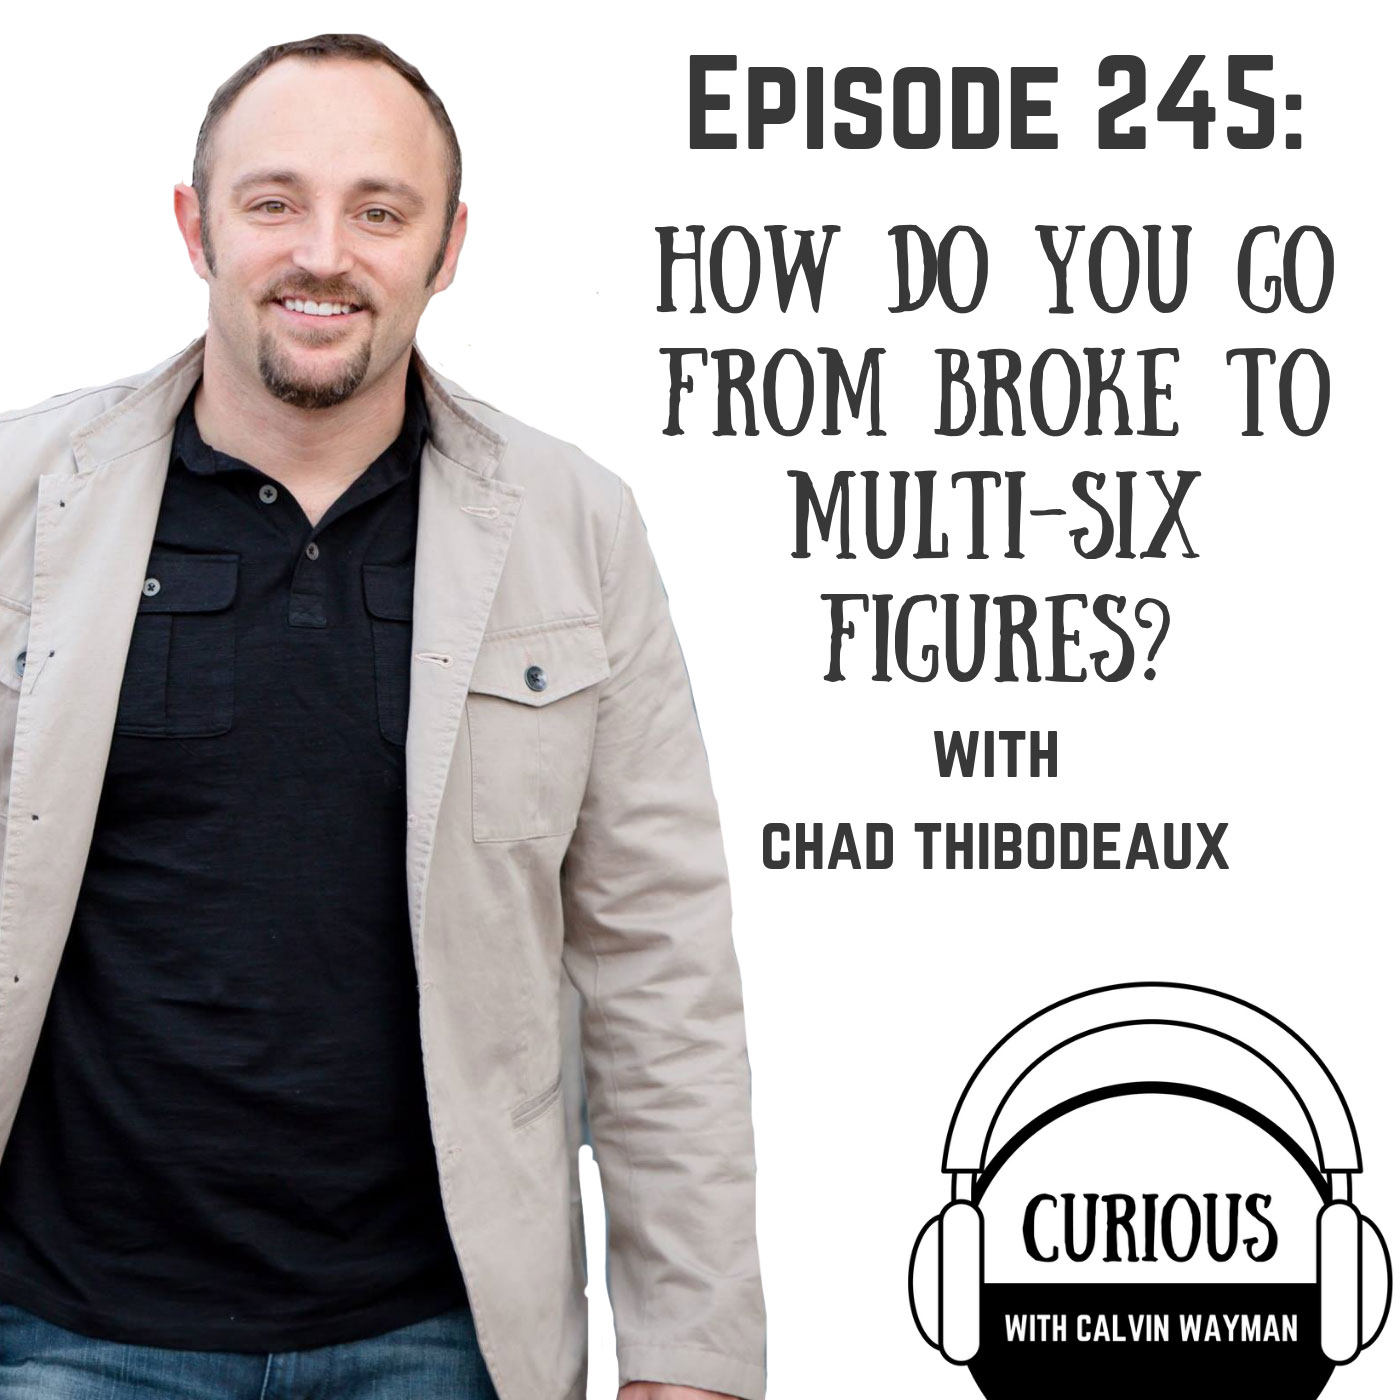 Ep 245-How Do You Go From Broke to Multi-Six Figures? with Chad Thibodeaux